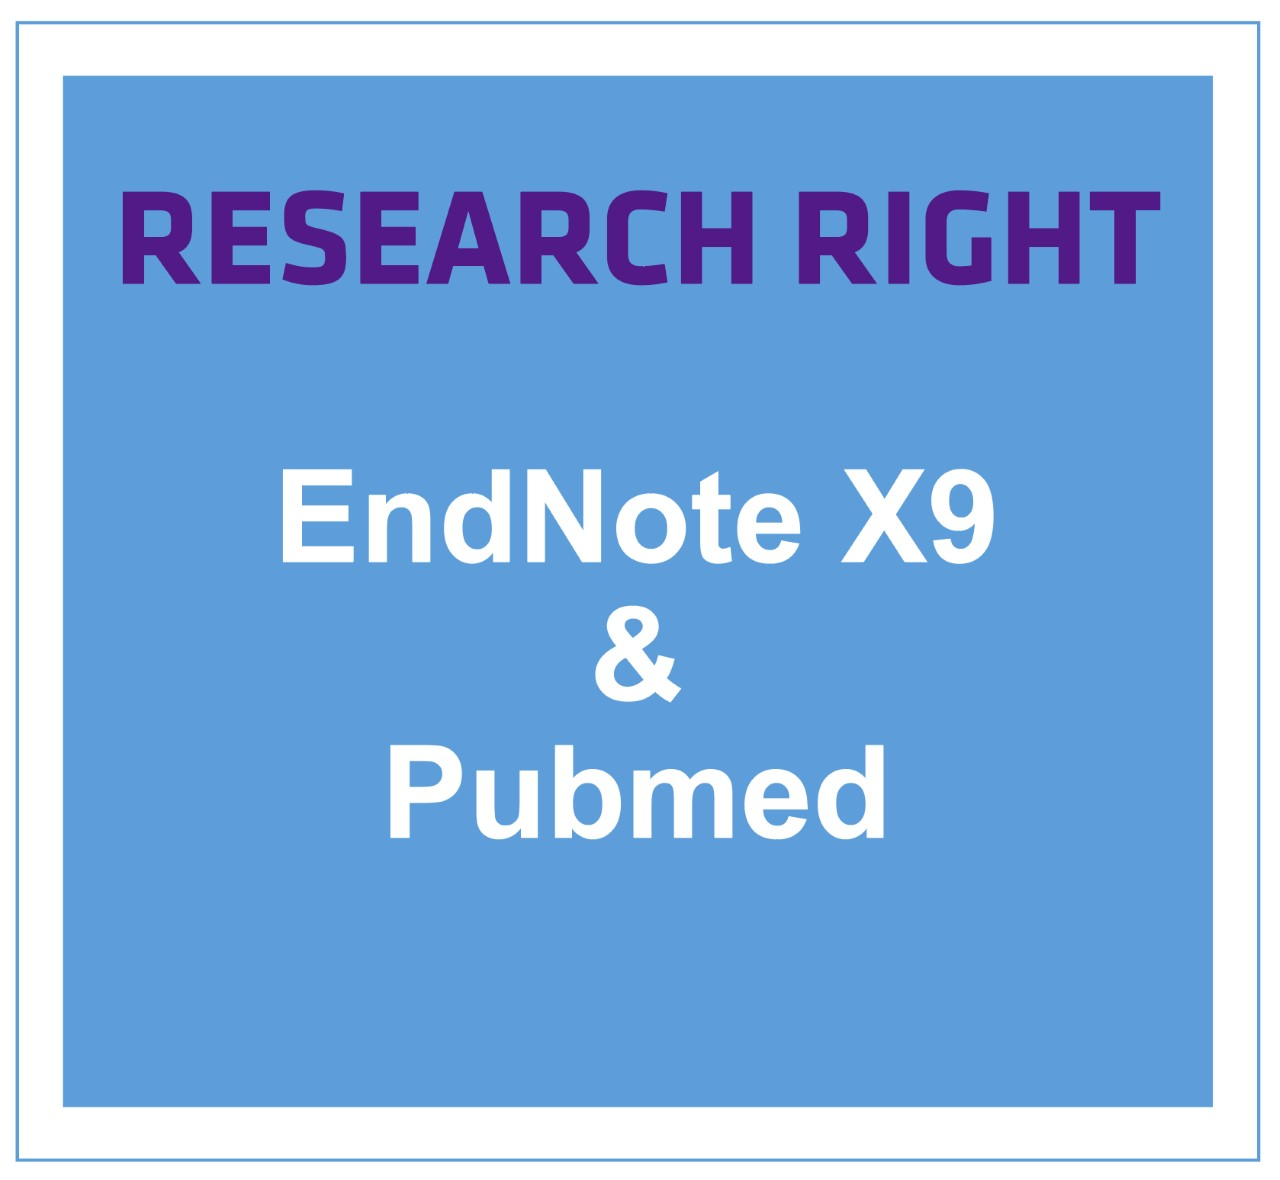 Research Right with PubMed & EndNote X9